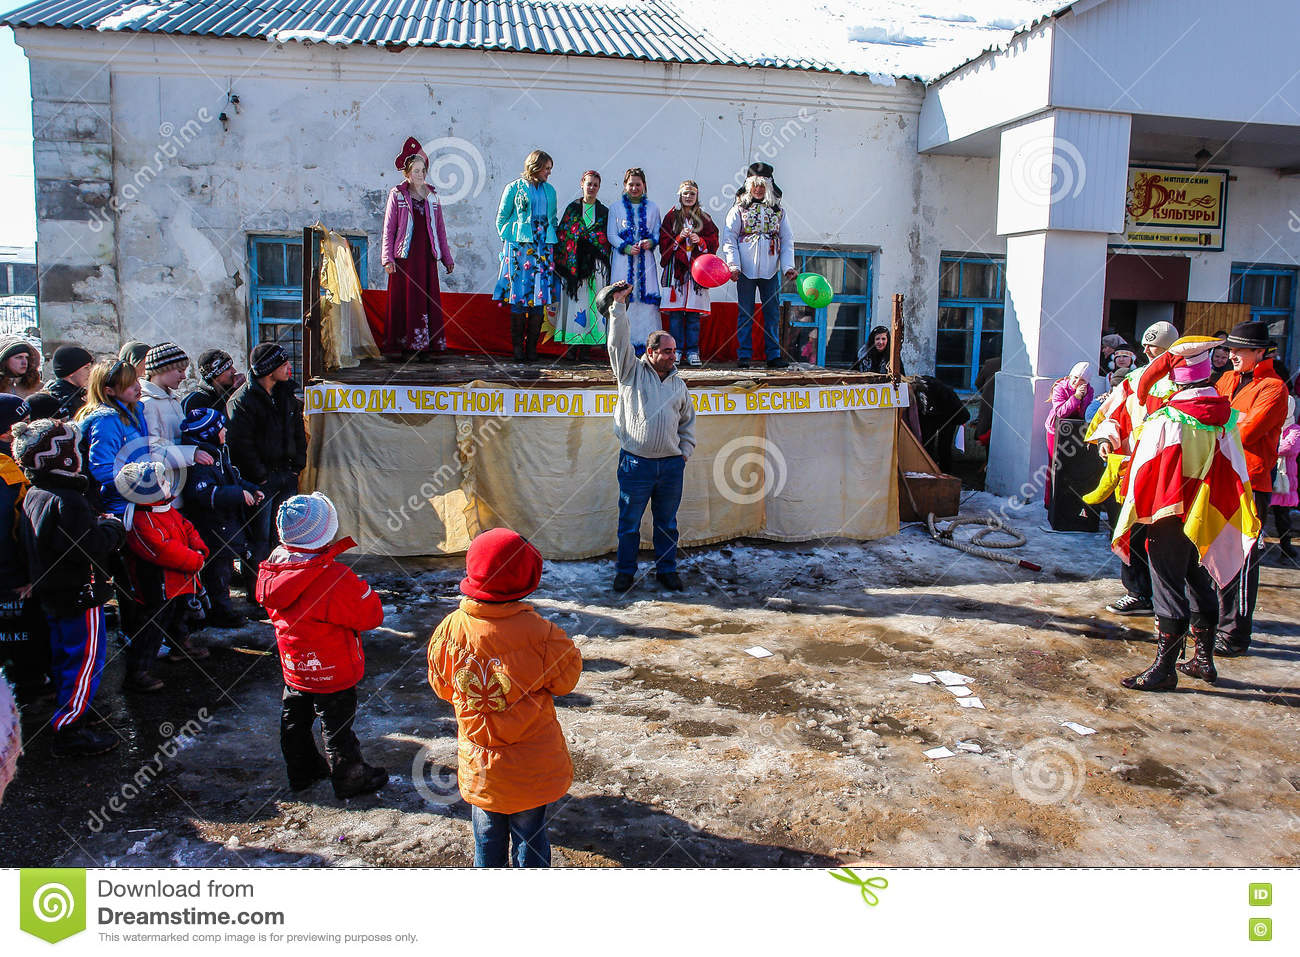 What is the number of Maslenitsa in 2019 67